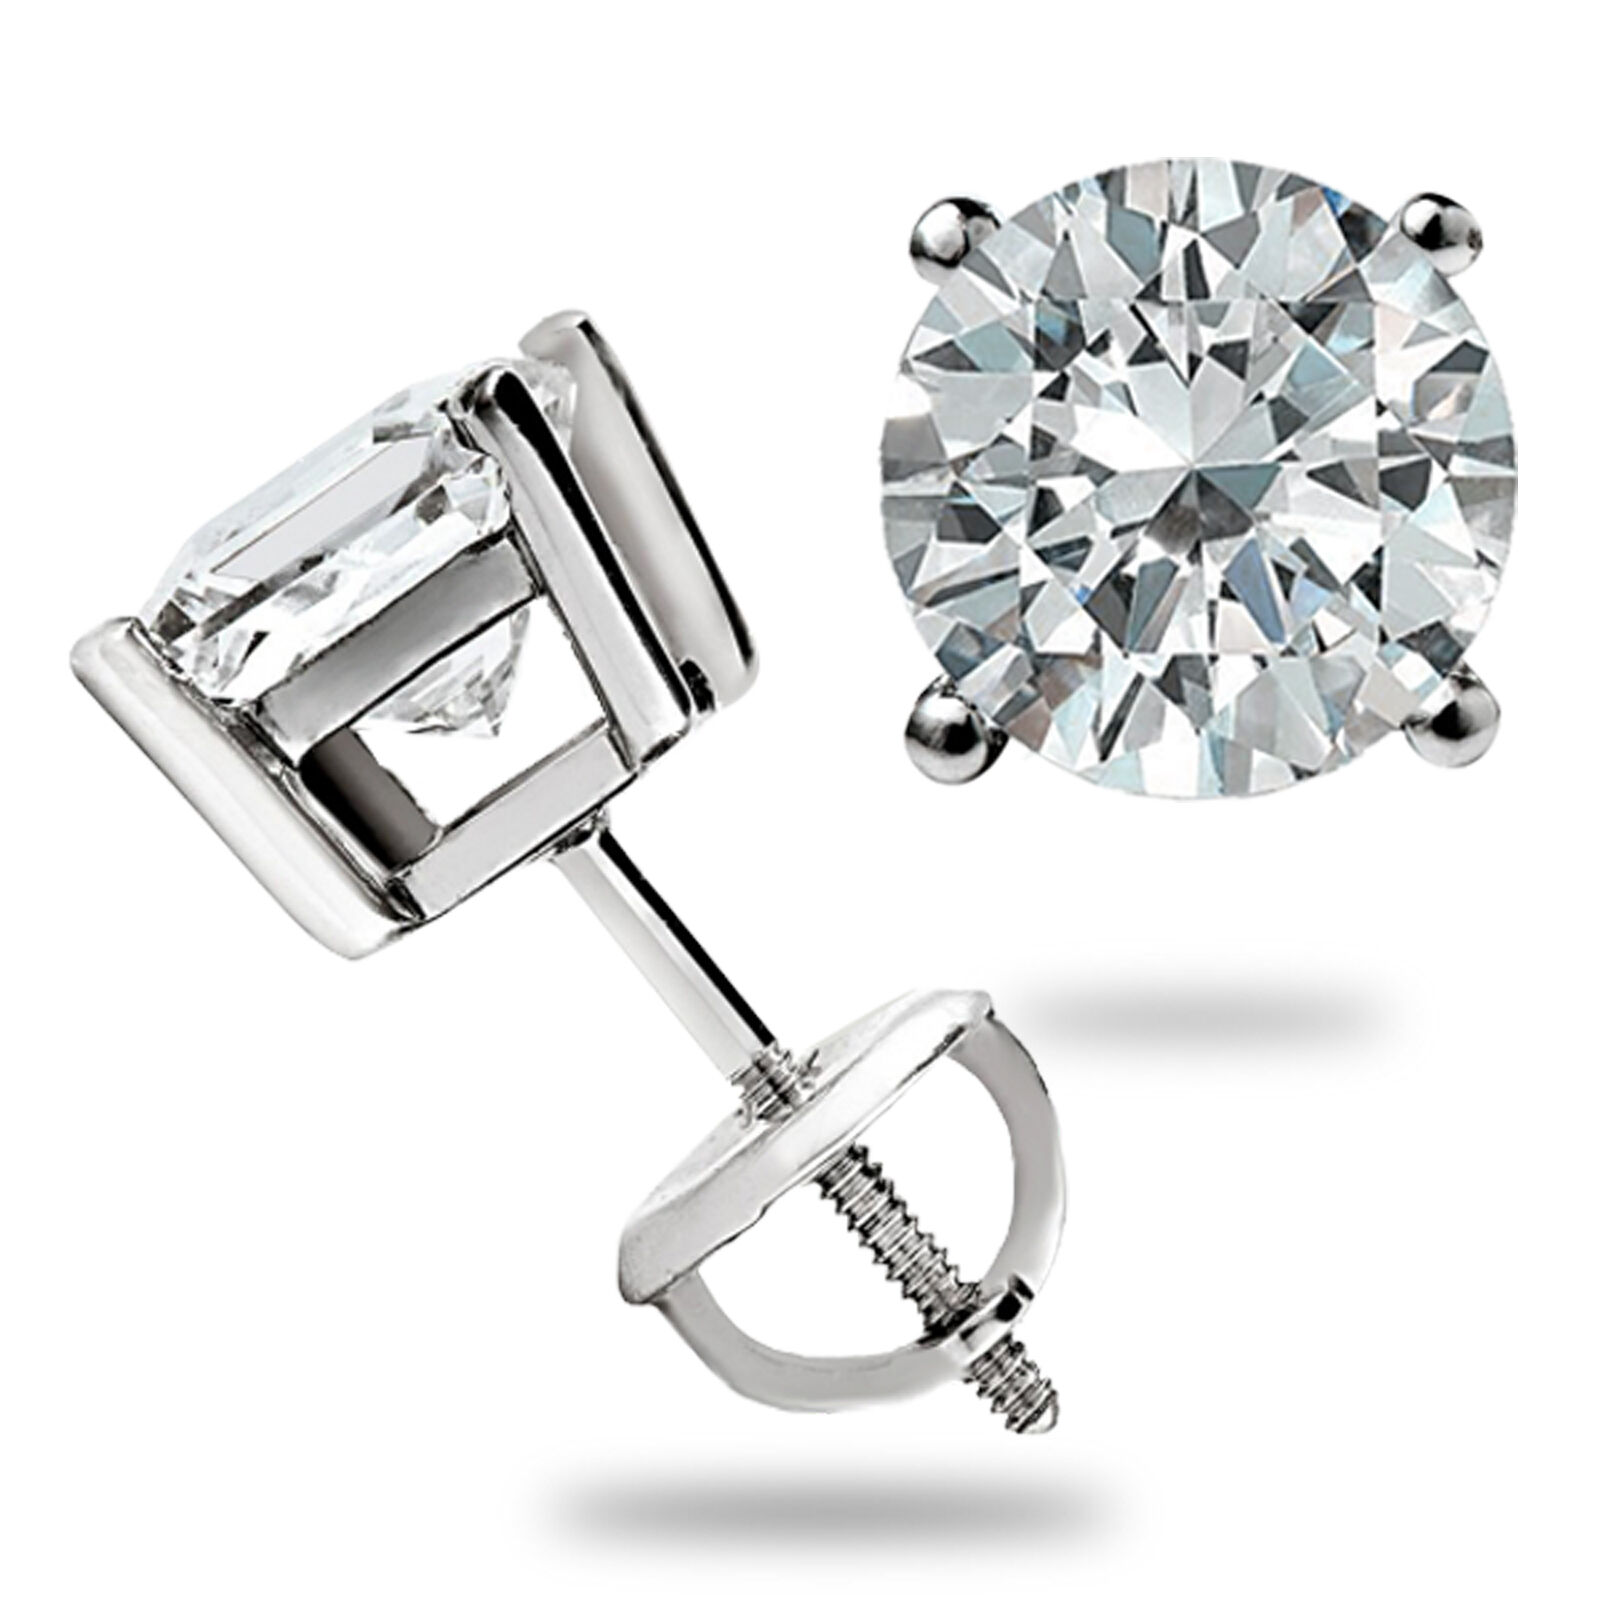 3 0 Ct Round Cut Basket Screw Back Lab Diamond Earrings Solid 14k White Gold